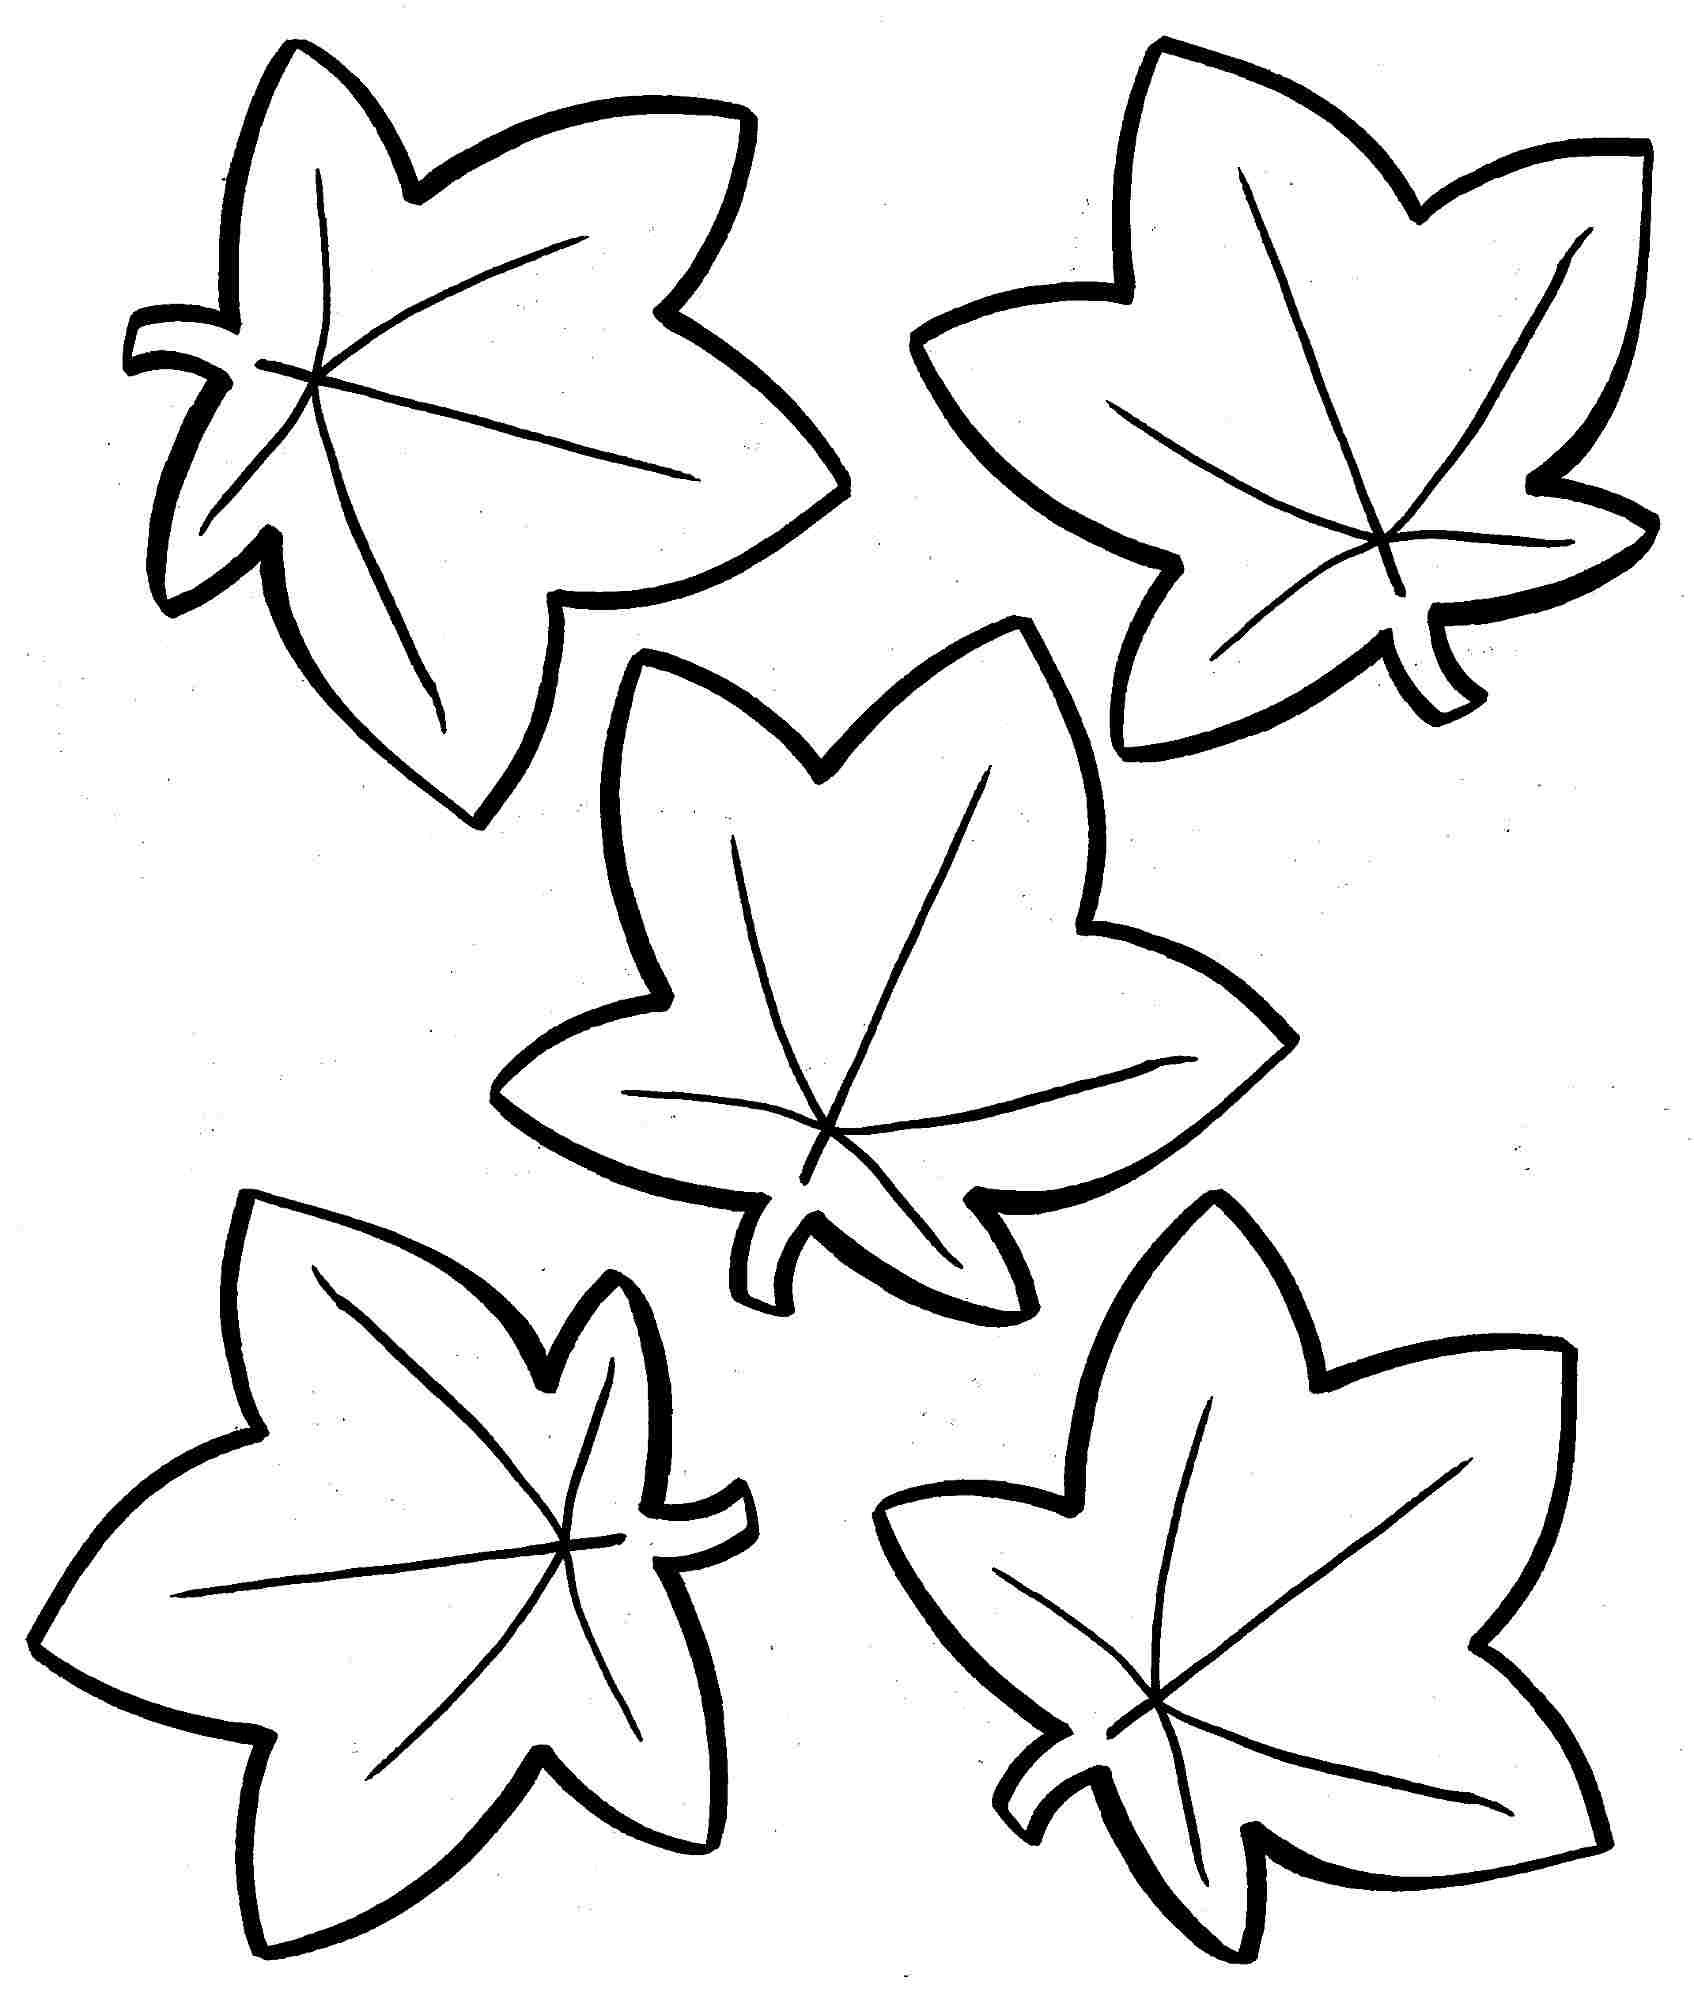 Fall Leaves Coloring Pages Printable Autumn Leaves Coloring Page Az Coloring Pages Krayon Elisi Fikirleri Boyama Kitaplari Desenler